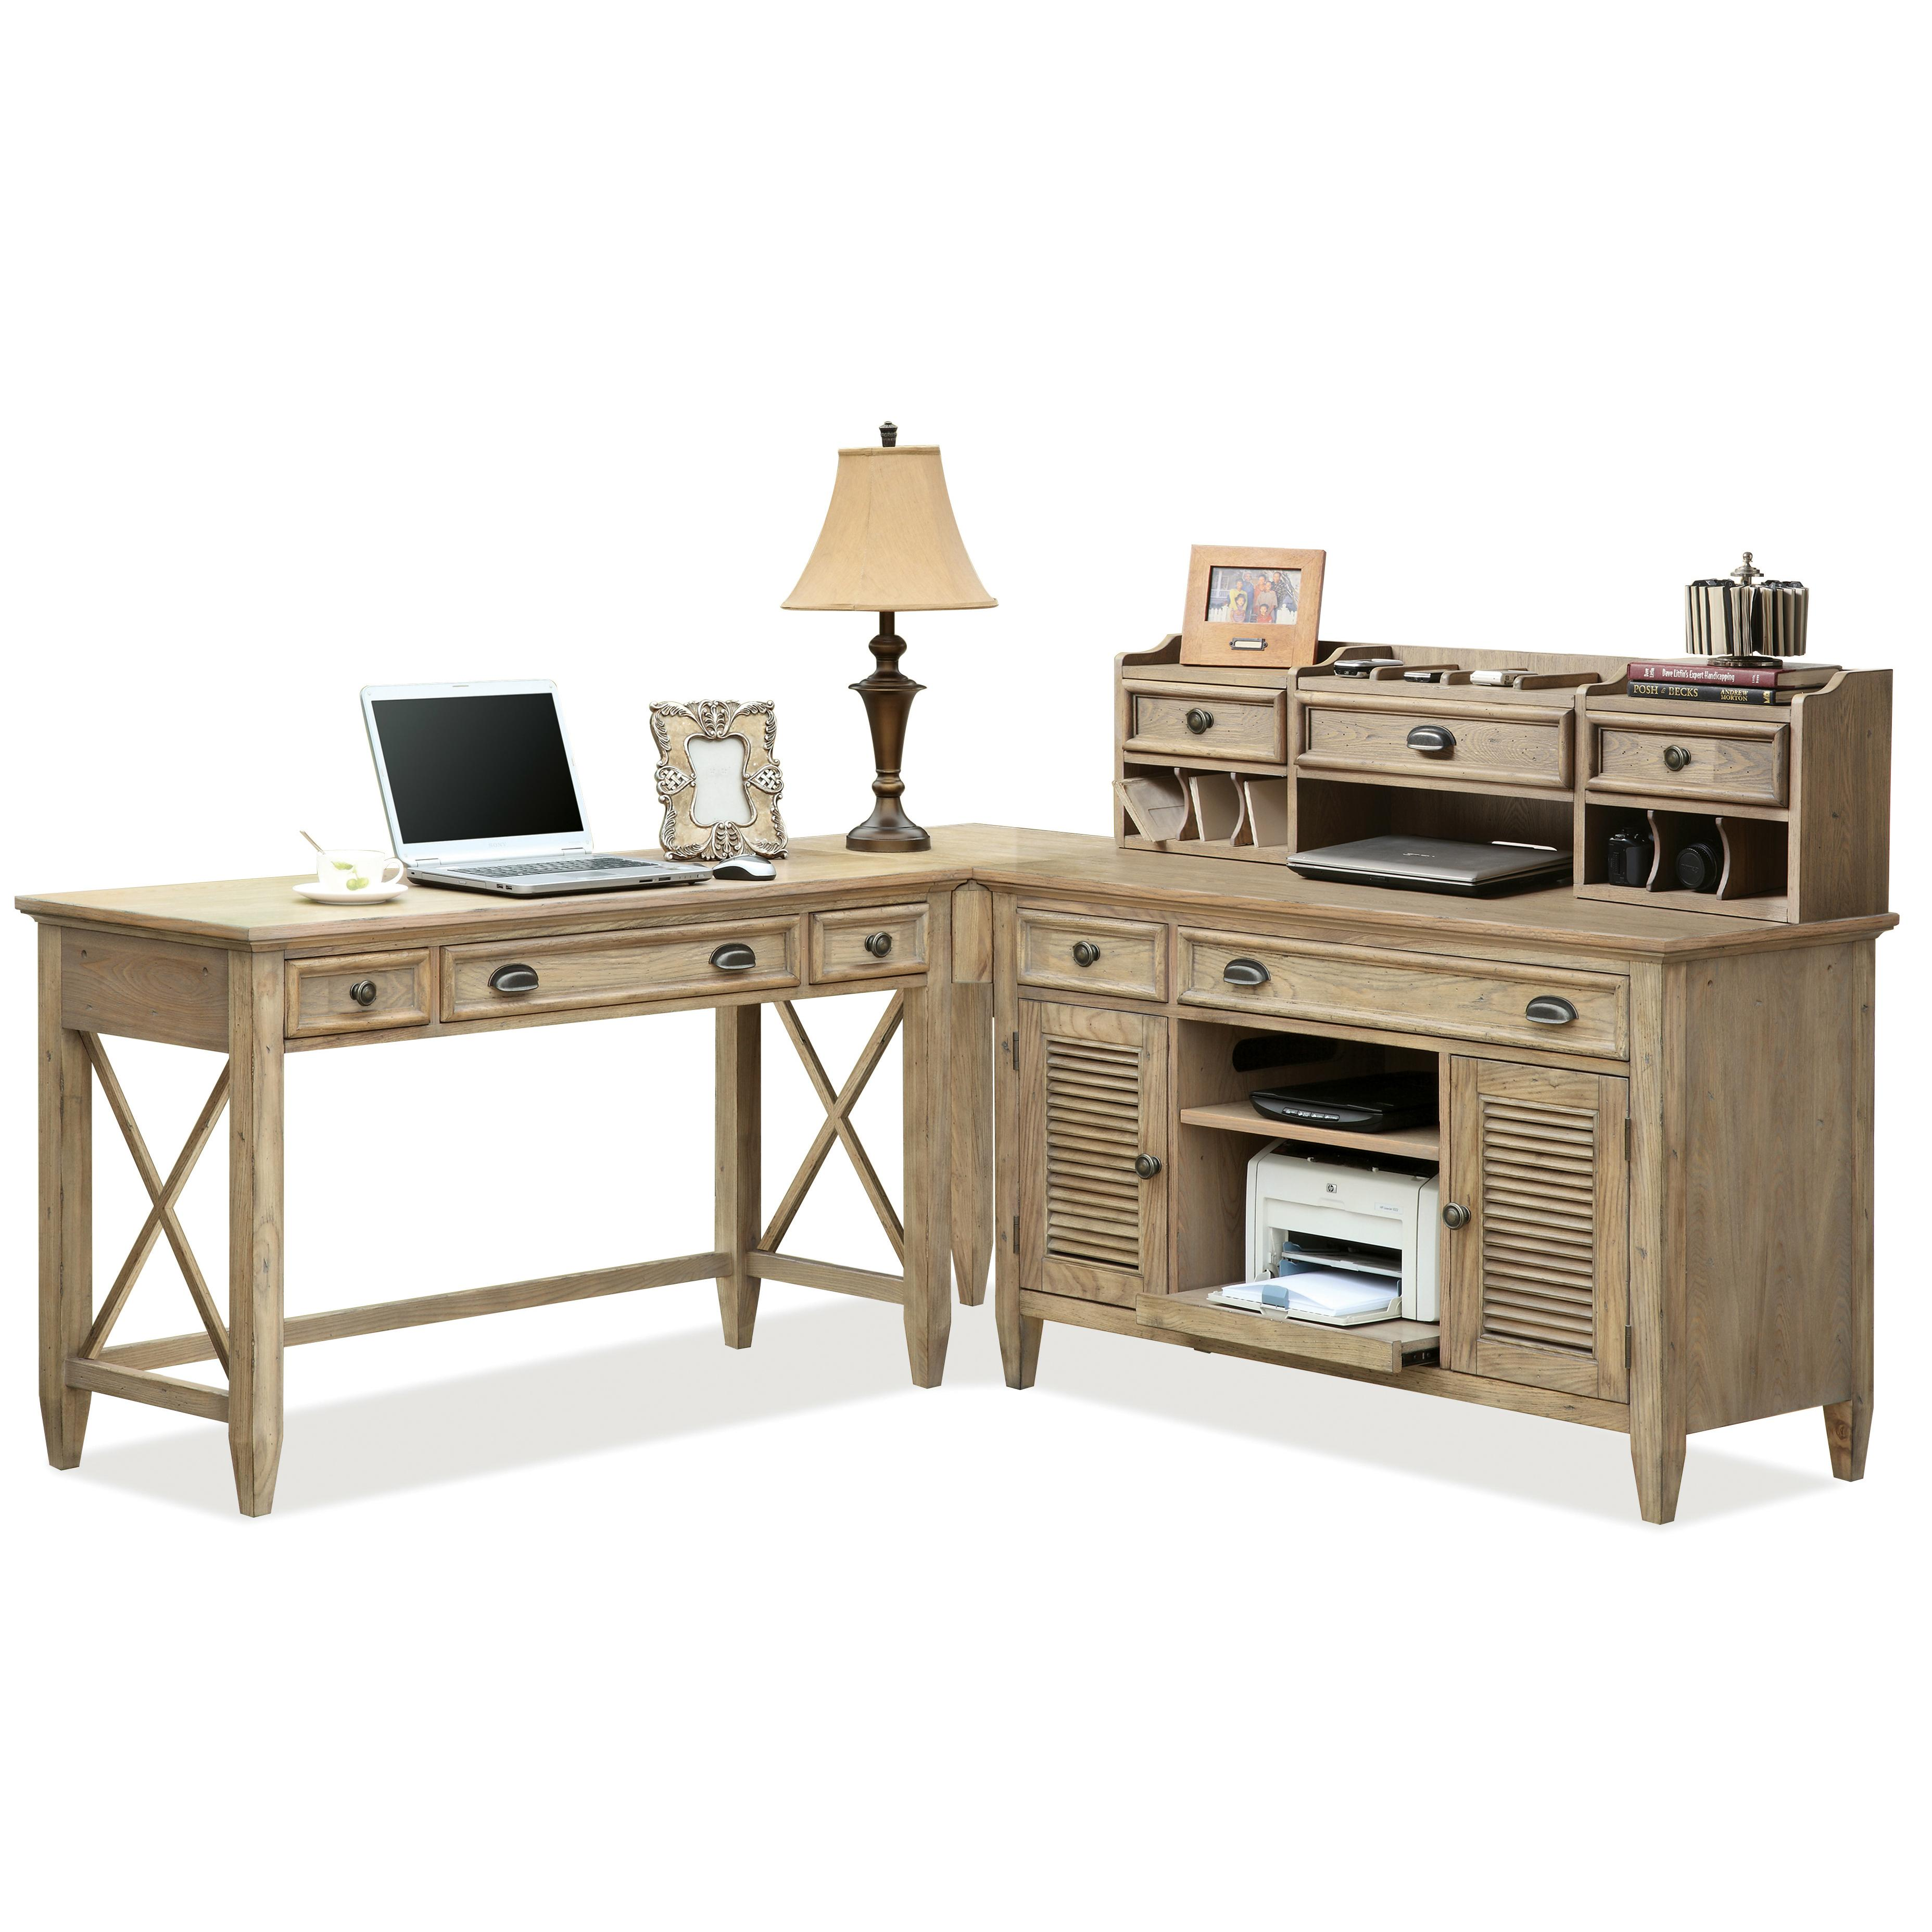 Riverside Furniture Coventry Corner Writing Desk U0026 Credenza With Hutch    AHFA   Desk U0026 Hutch Dealer Locator